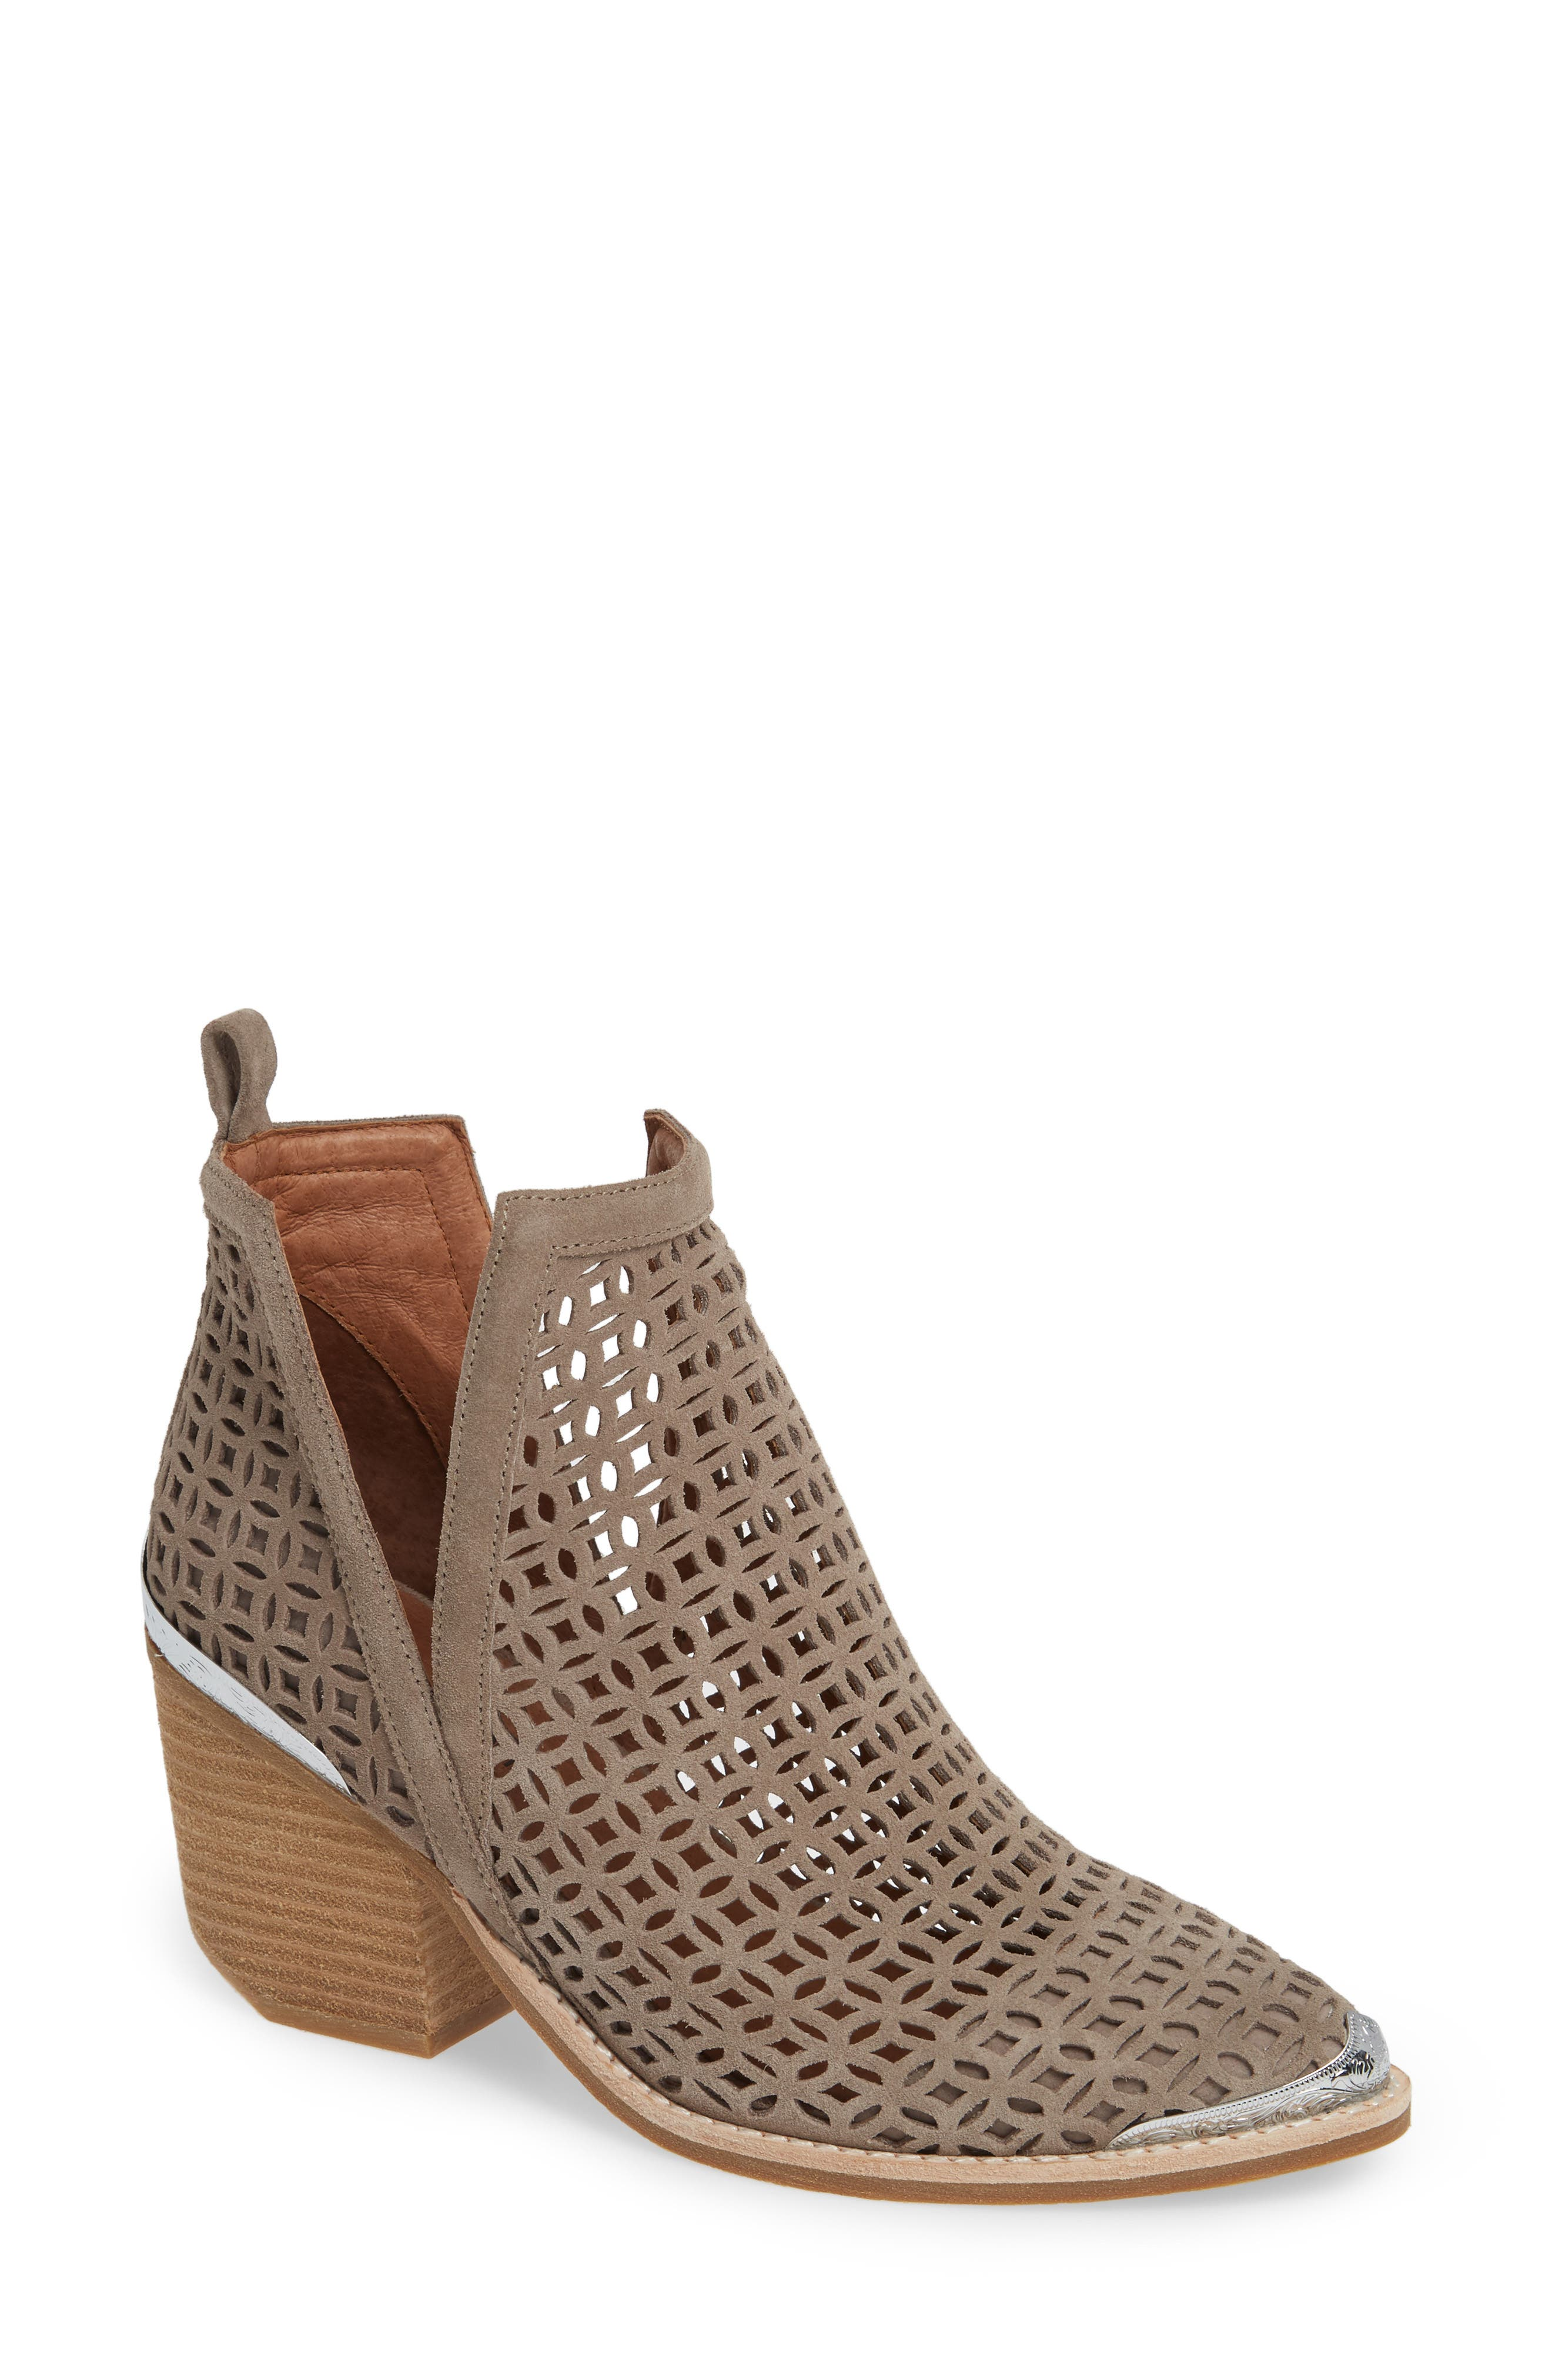 JEFFREY CAMPBELL Cromwell-C2 Perforated Bootie, Main, color, TAUPE SUEDE